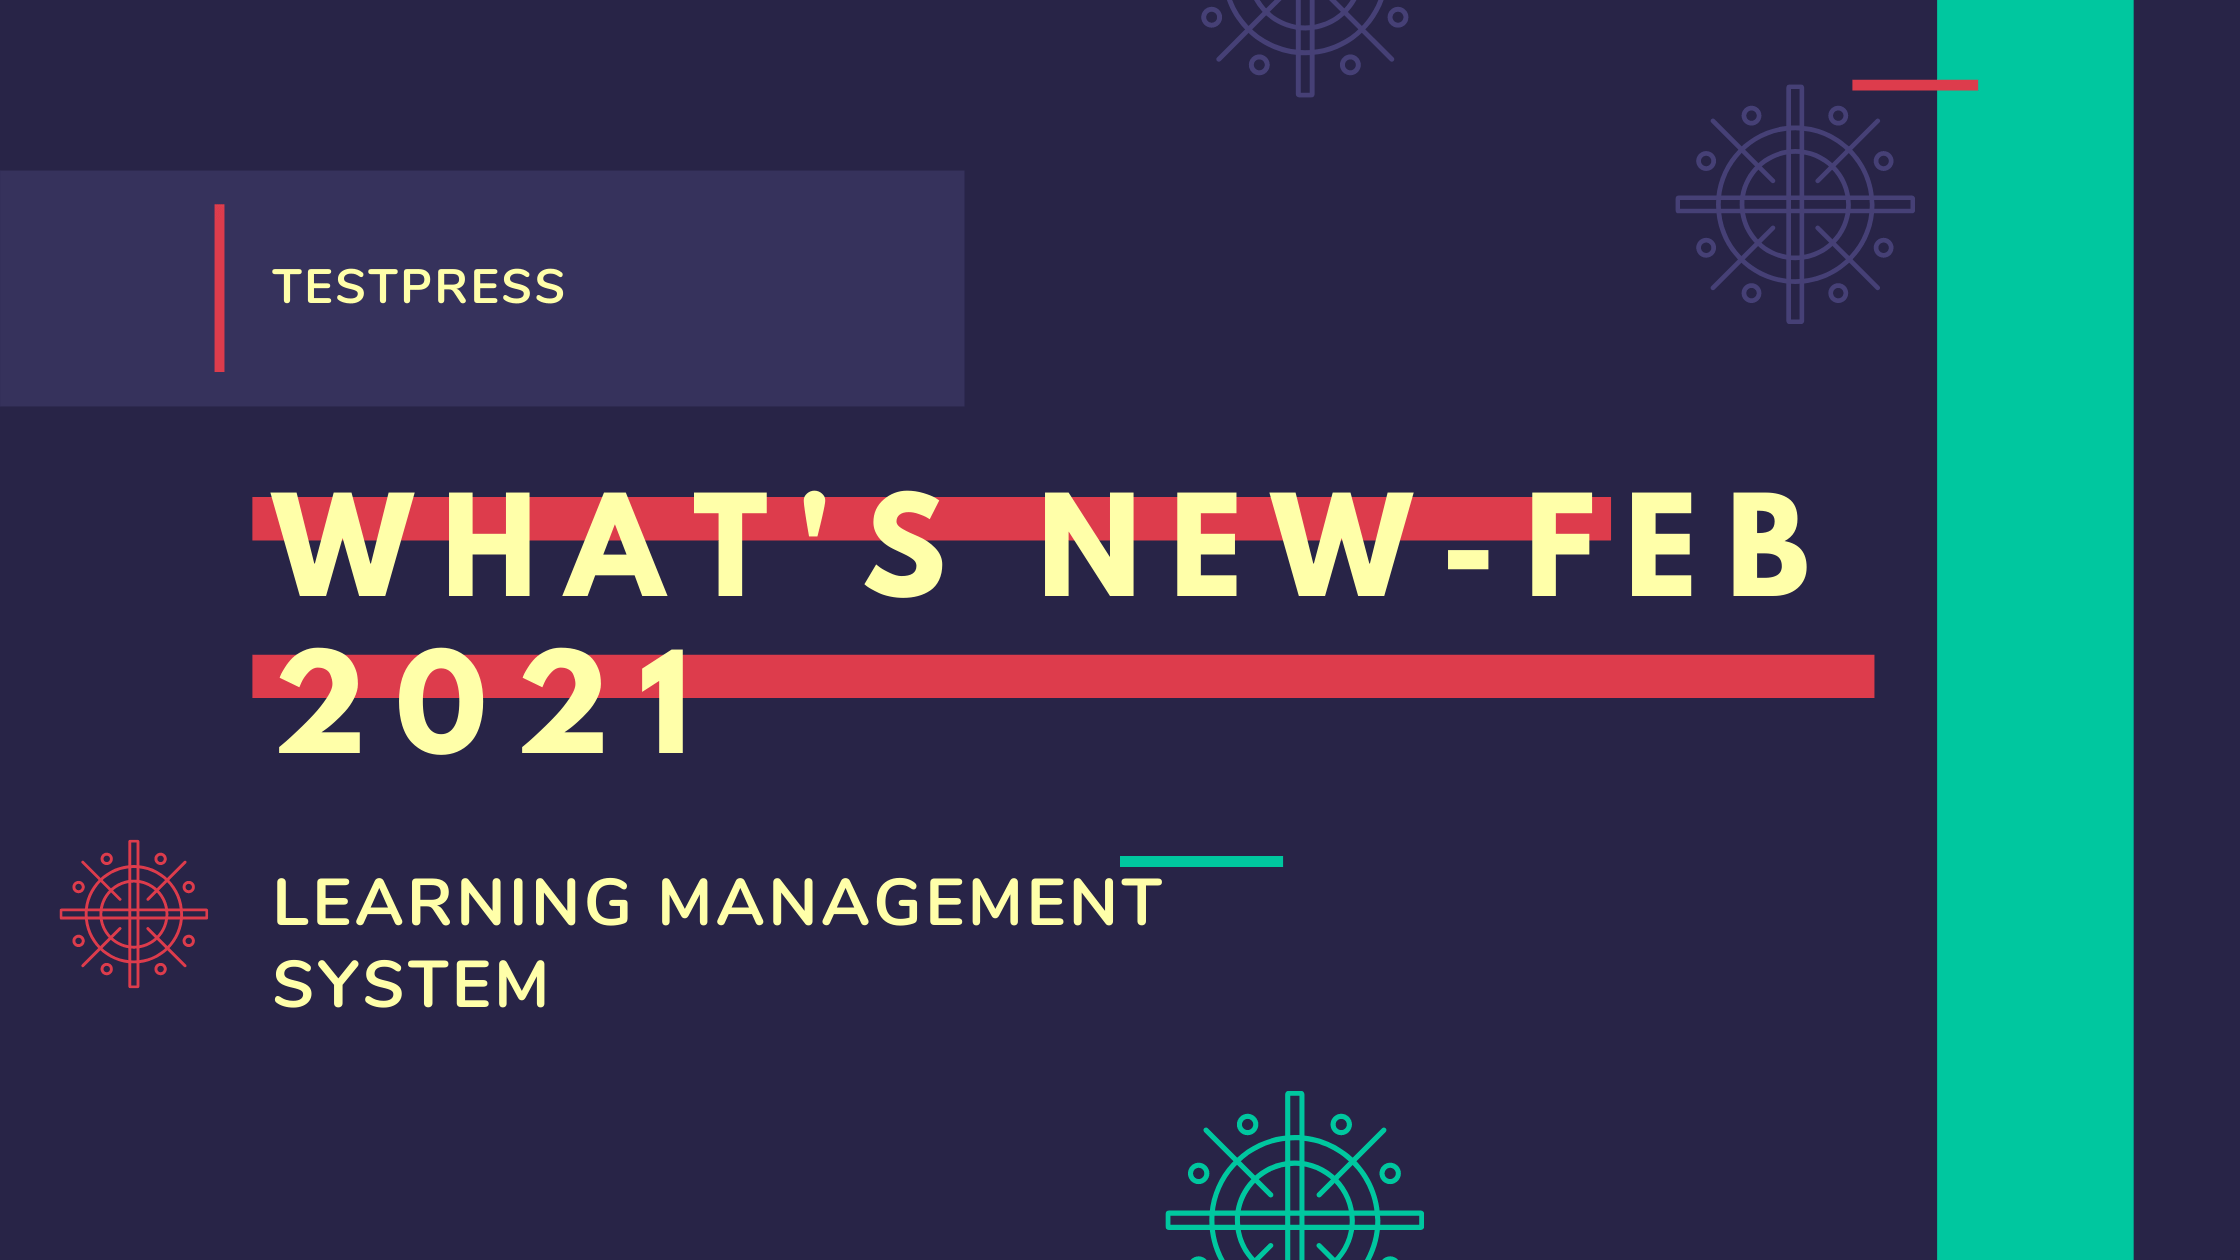 What's new in Testpress Learning Management System - Feb 2021